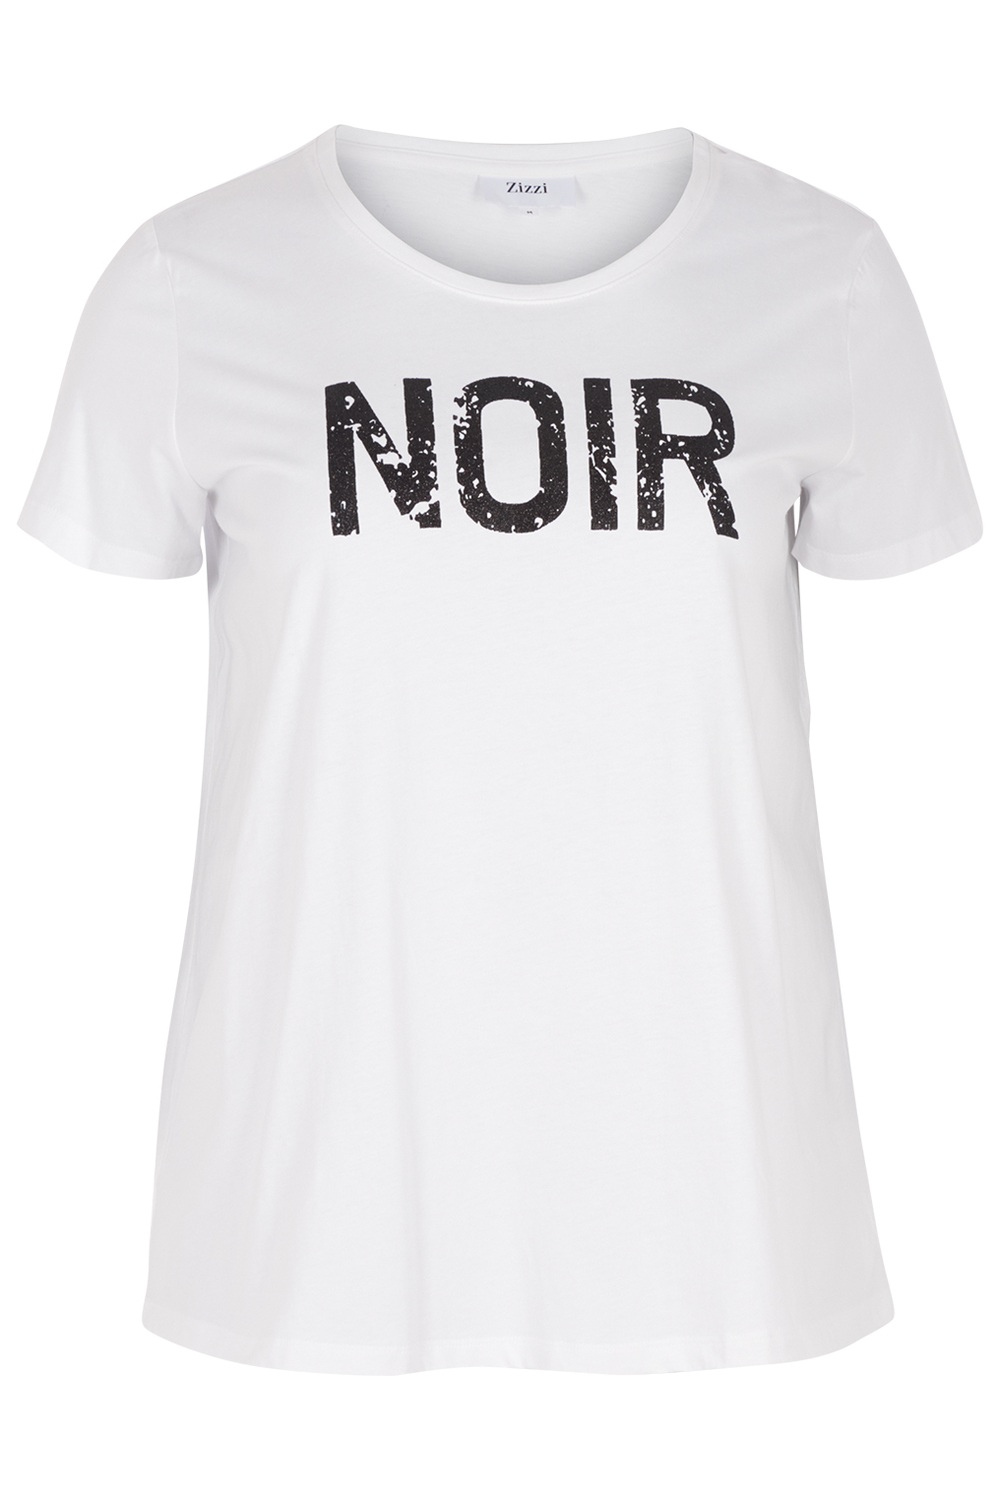 Shirt Zizzi FAITH tekst noir